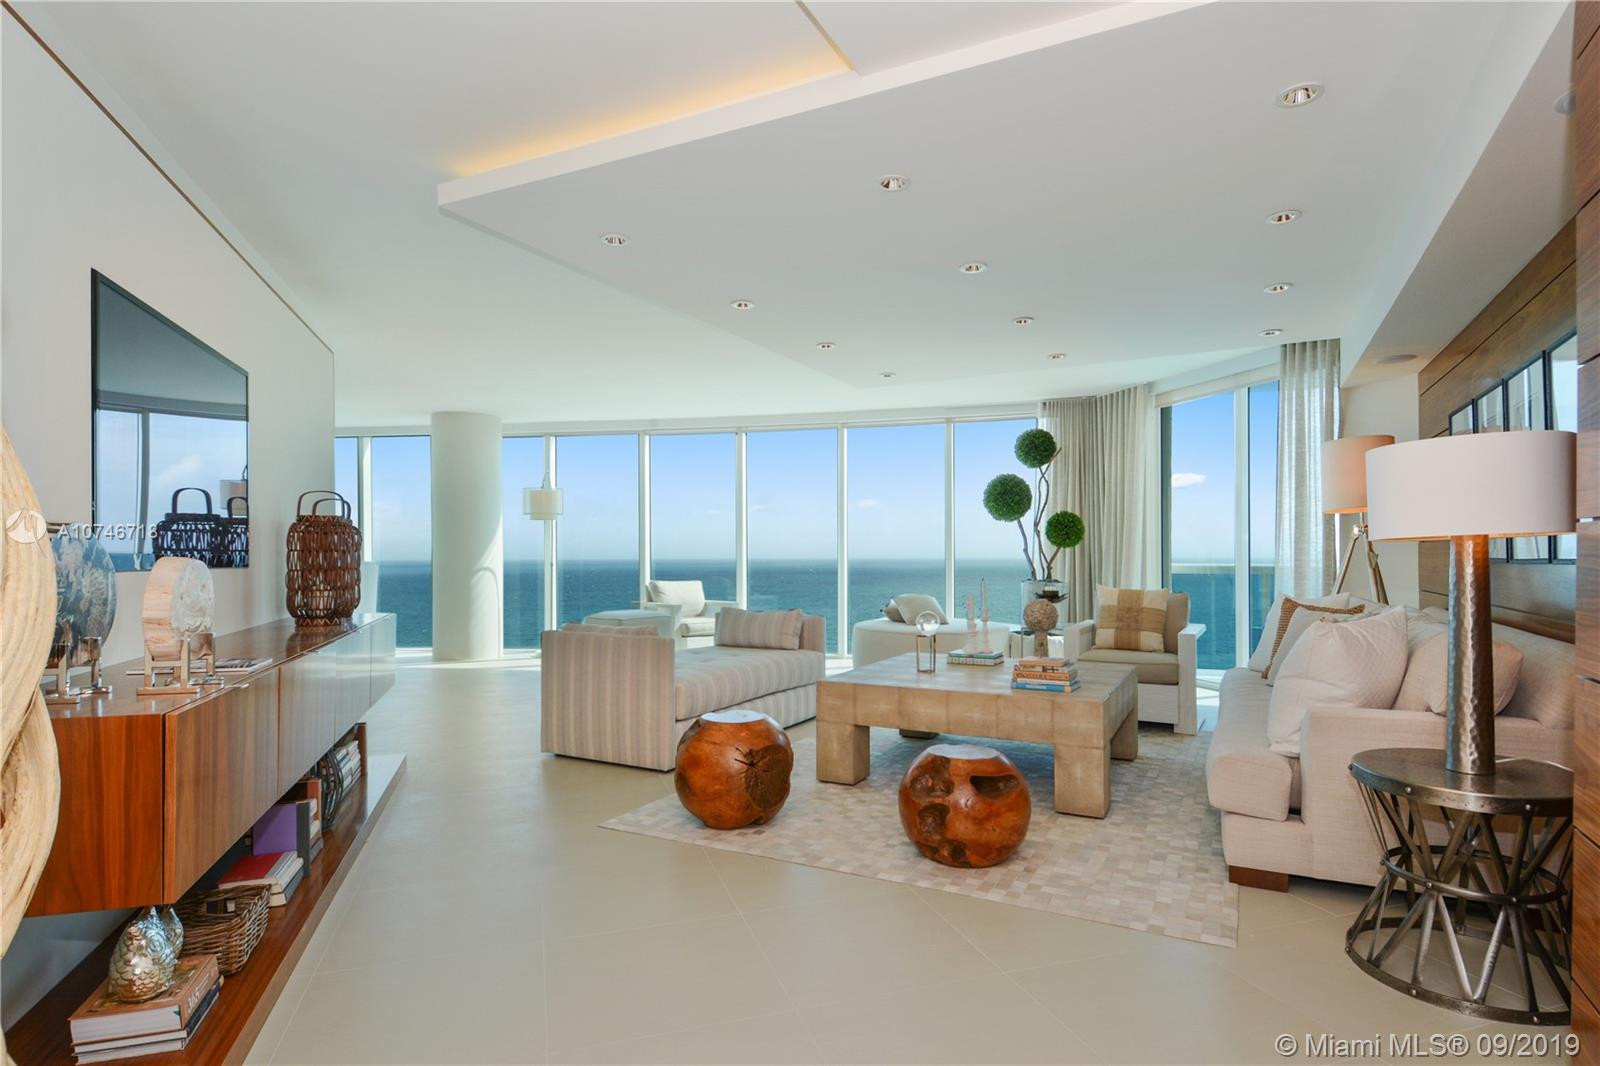 DESIGNED + FURNISHED BY STEVEN G. NEVER LIVED IN! THIS STUNNING MODEL RESIDENCE IN SUPER LUXURY TRUMP HOLLYWOOD SIGNATURE BUILDING ON THE OCEAN IS A PERFECT 10. ENTER FROM PRIVATE ELEVATOR FOYER AND IMMEDIATELY SEE THE BEST DIRECT OCEAN VIEWS TO TAKE YOUR BREATH AWAY. SPACIOUS LIGHT  + BRIGHT WITH 3 ENSUITES PLUS A FAMILY ROOM, 3.5 BATHS + GOURMET KITCHEN WITH HIGH QUALITY MIELE + SUB-ZERO APPLIANCES. BEING SOLD COMPLETELY TURNKEY! STEVEN G DESIGN. NO EXPENSE WAS SPARED. CABANA AVAILABLE/NEGOTIABLE. EXPANSIVE SOARING FLOOR TO CEILING GLASS. A DREAM! RESORT STYLE AMENITIES: TENNIS,POOL,BEACH SERVICES, WINE CELLAR & TASTING SALOON, CIGAR ROOM,LIBRARY.